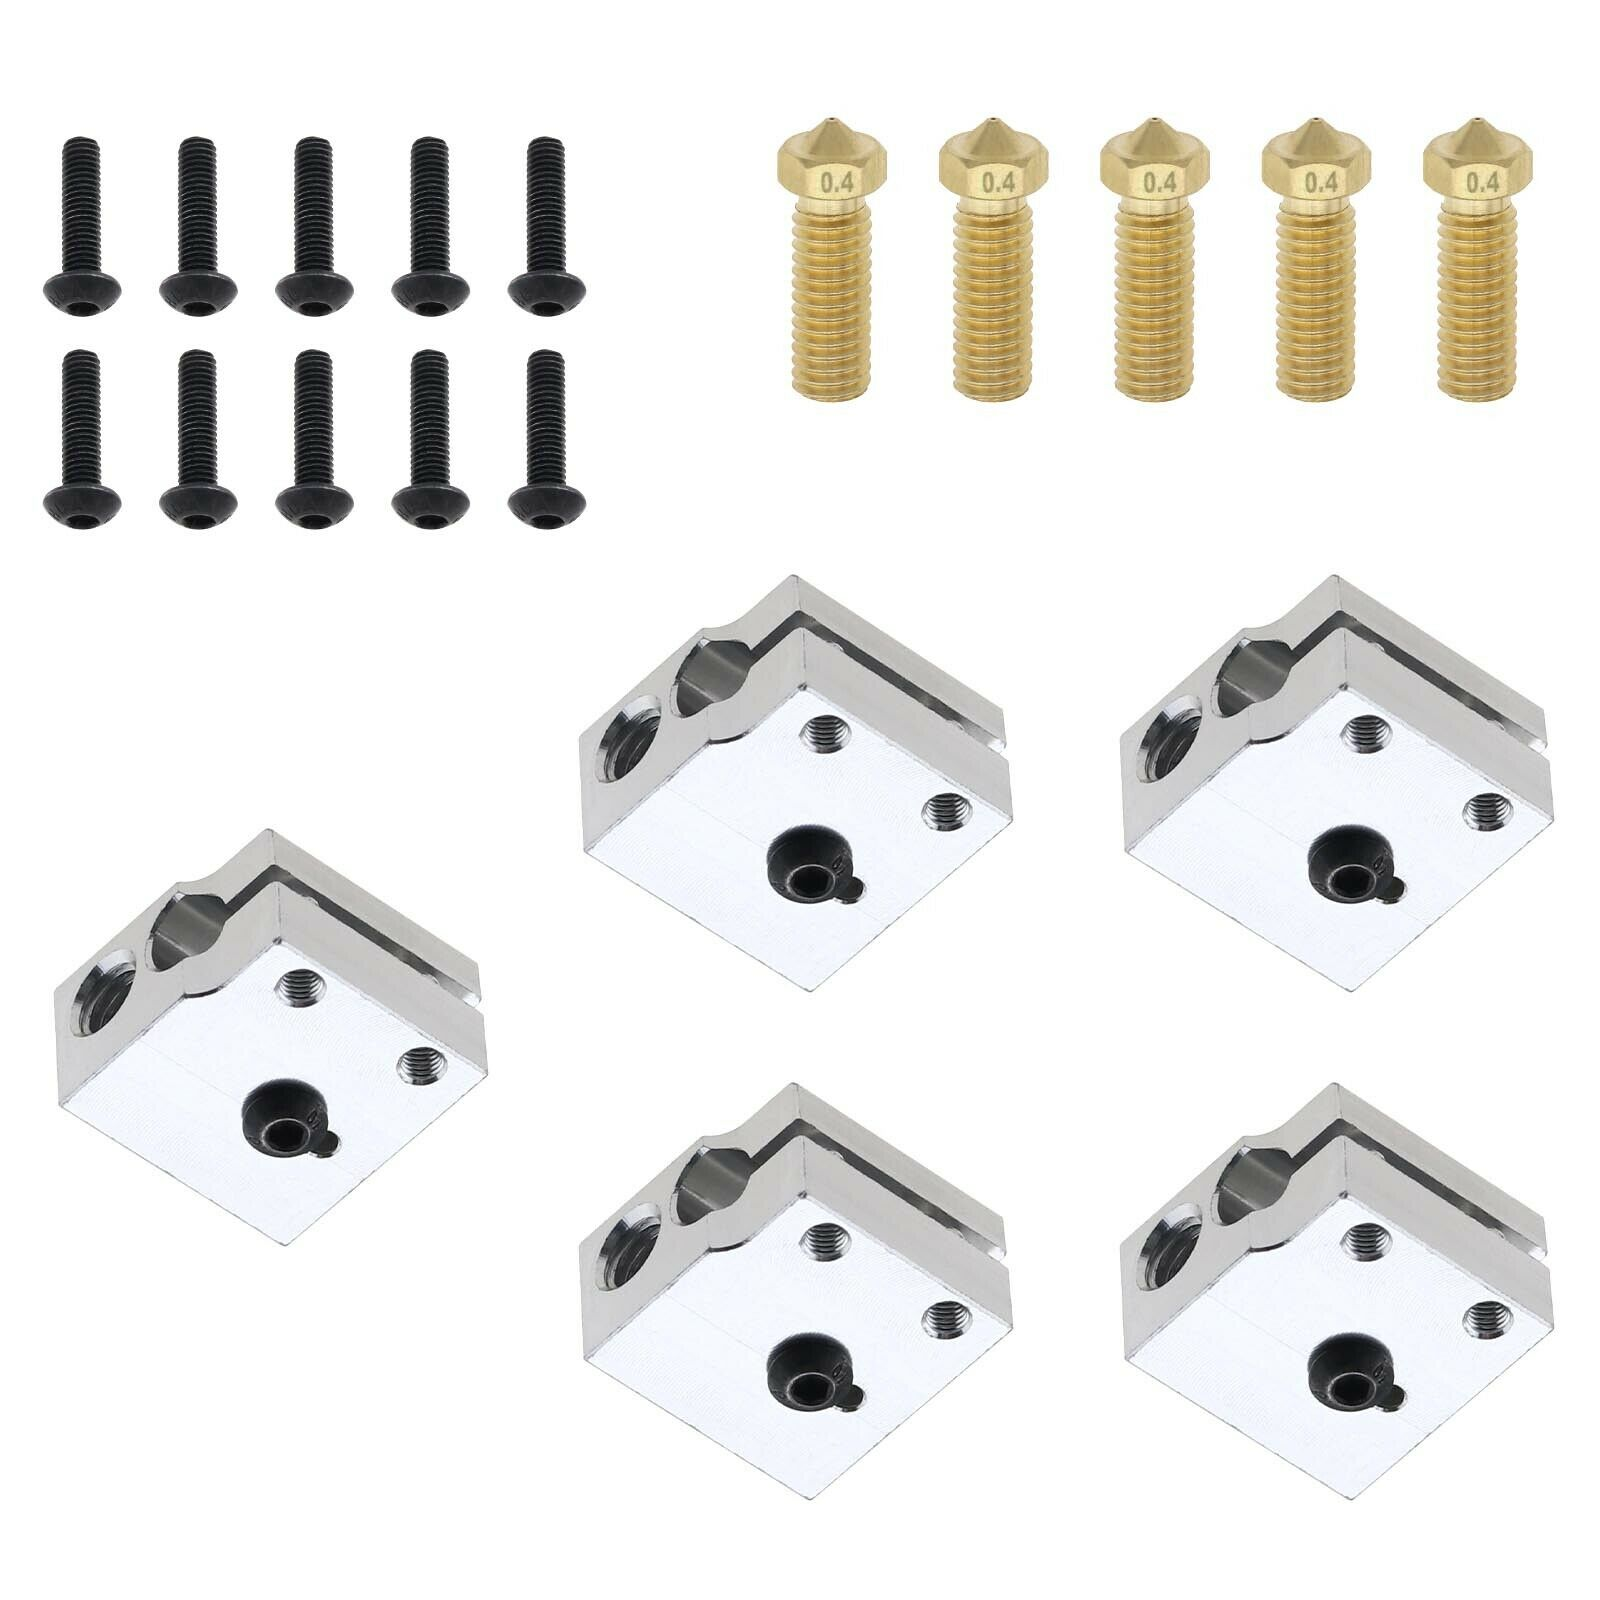 5 Set of Heater Blocks 0.4mm Brass Nozzle Compatible with E3D V6 Volcano